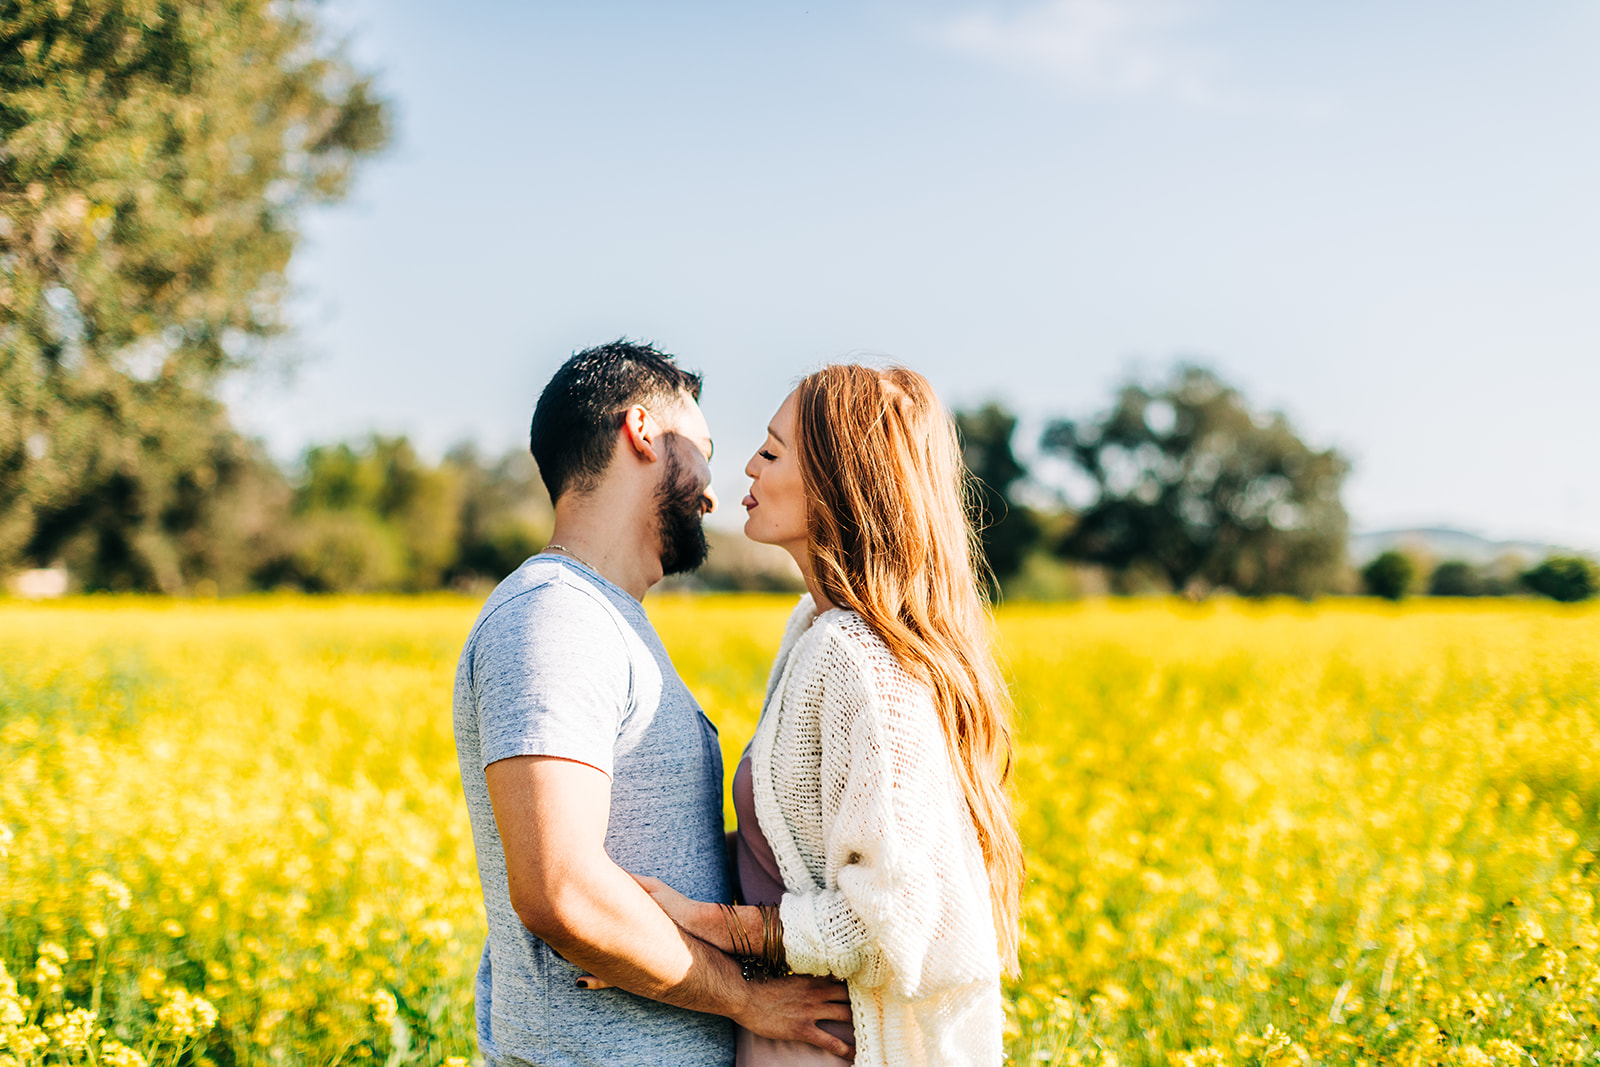 Katie-Yovin_Richard_Superbloom-Engagement-Photos_Clarisse-Rae_Southern-California-Wedding-Photographer-Orange-County-Engagement-Photos-3